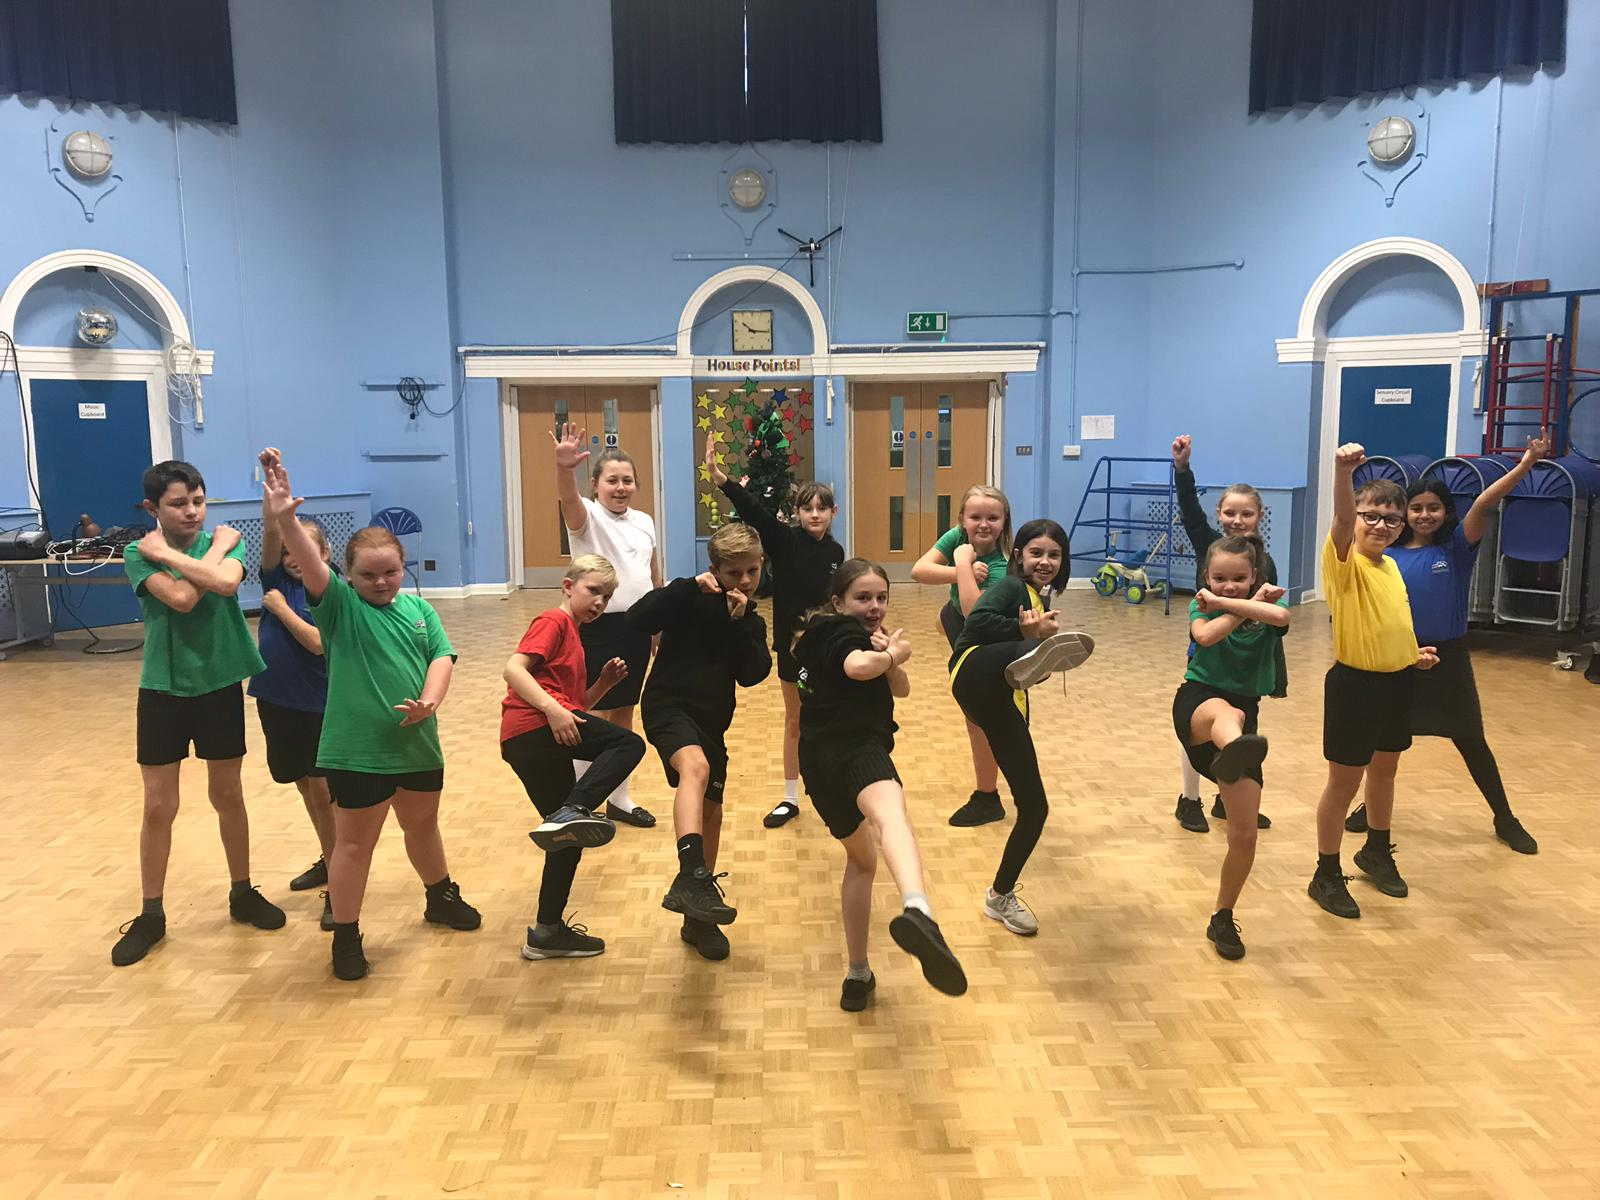 https://www.therightstepdc.co.uk/wp-content/uploads/2020/07/Greenfields-Primary-School-Super-heroes-dance-Right-Step.jpg